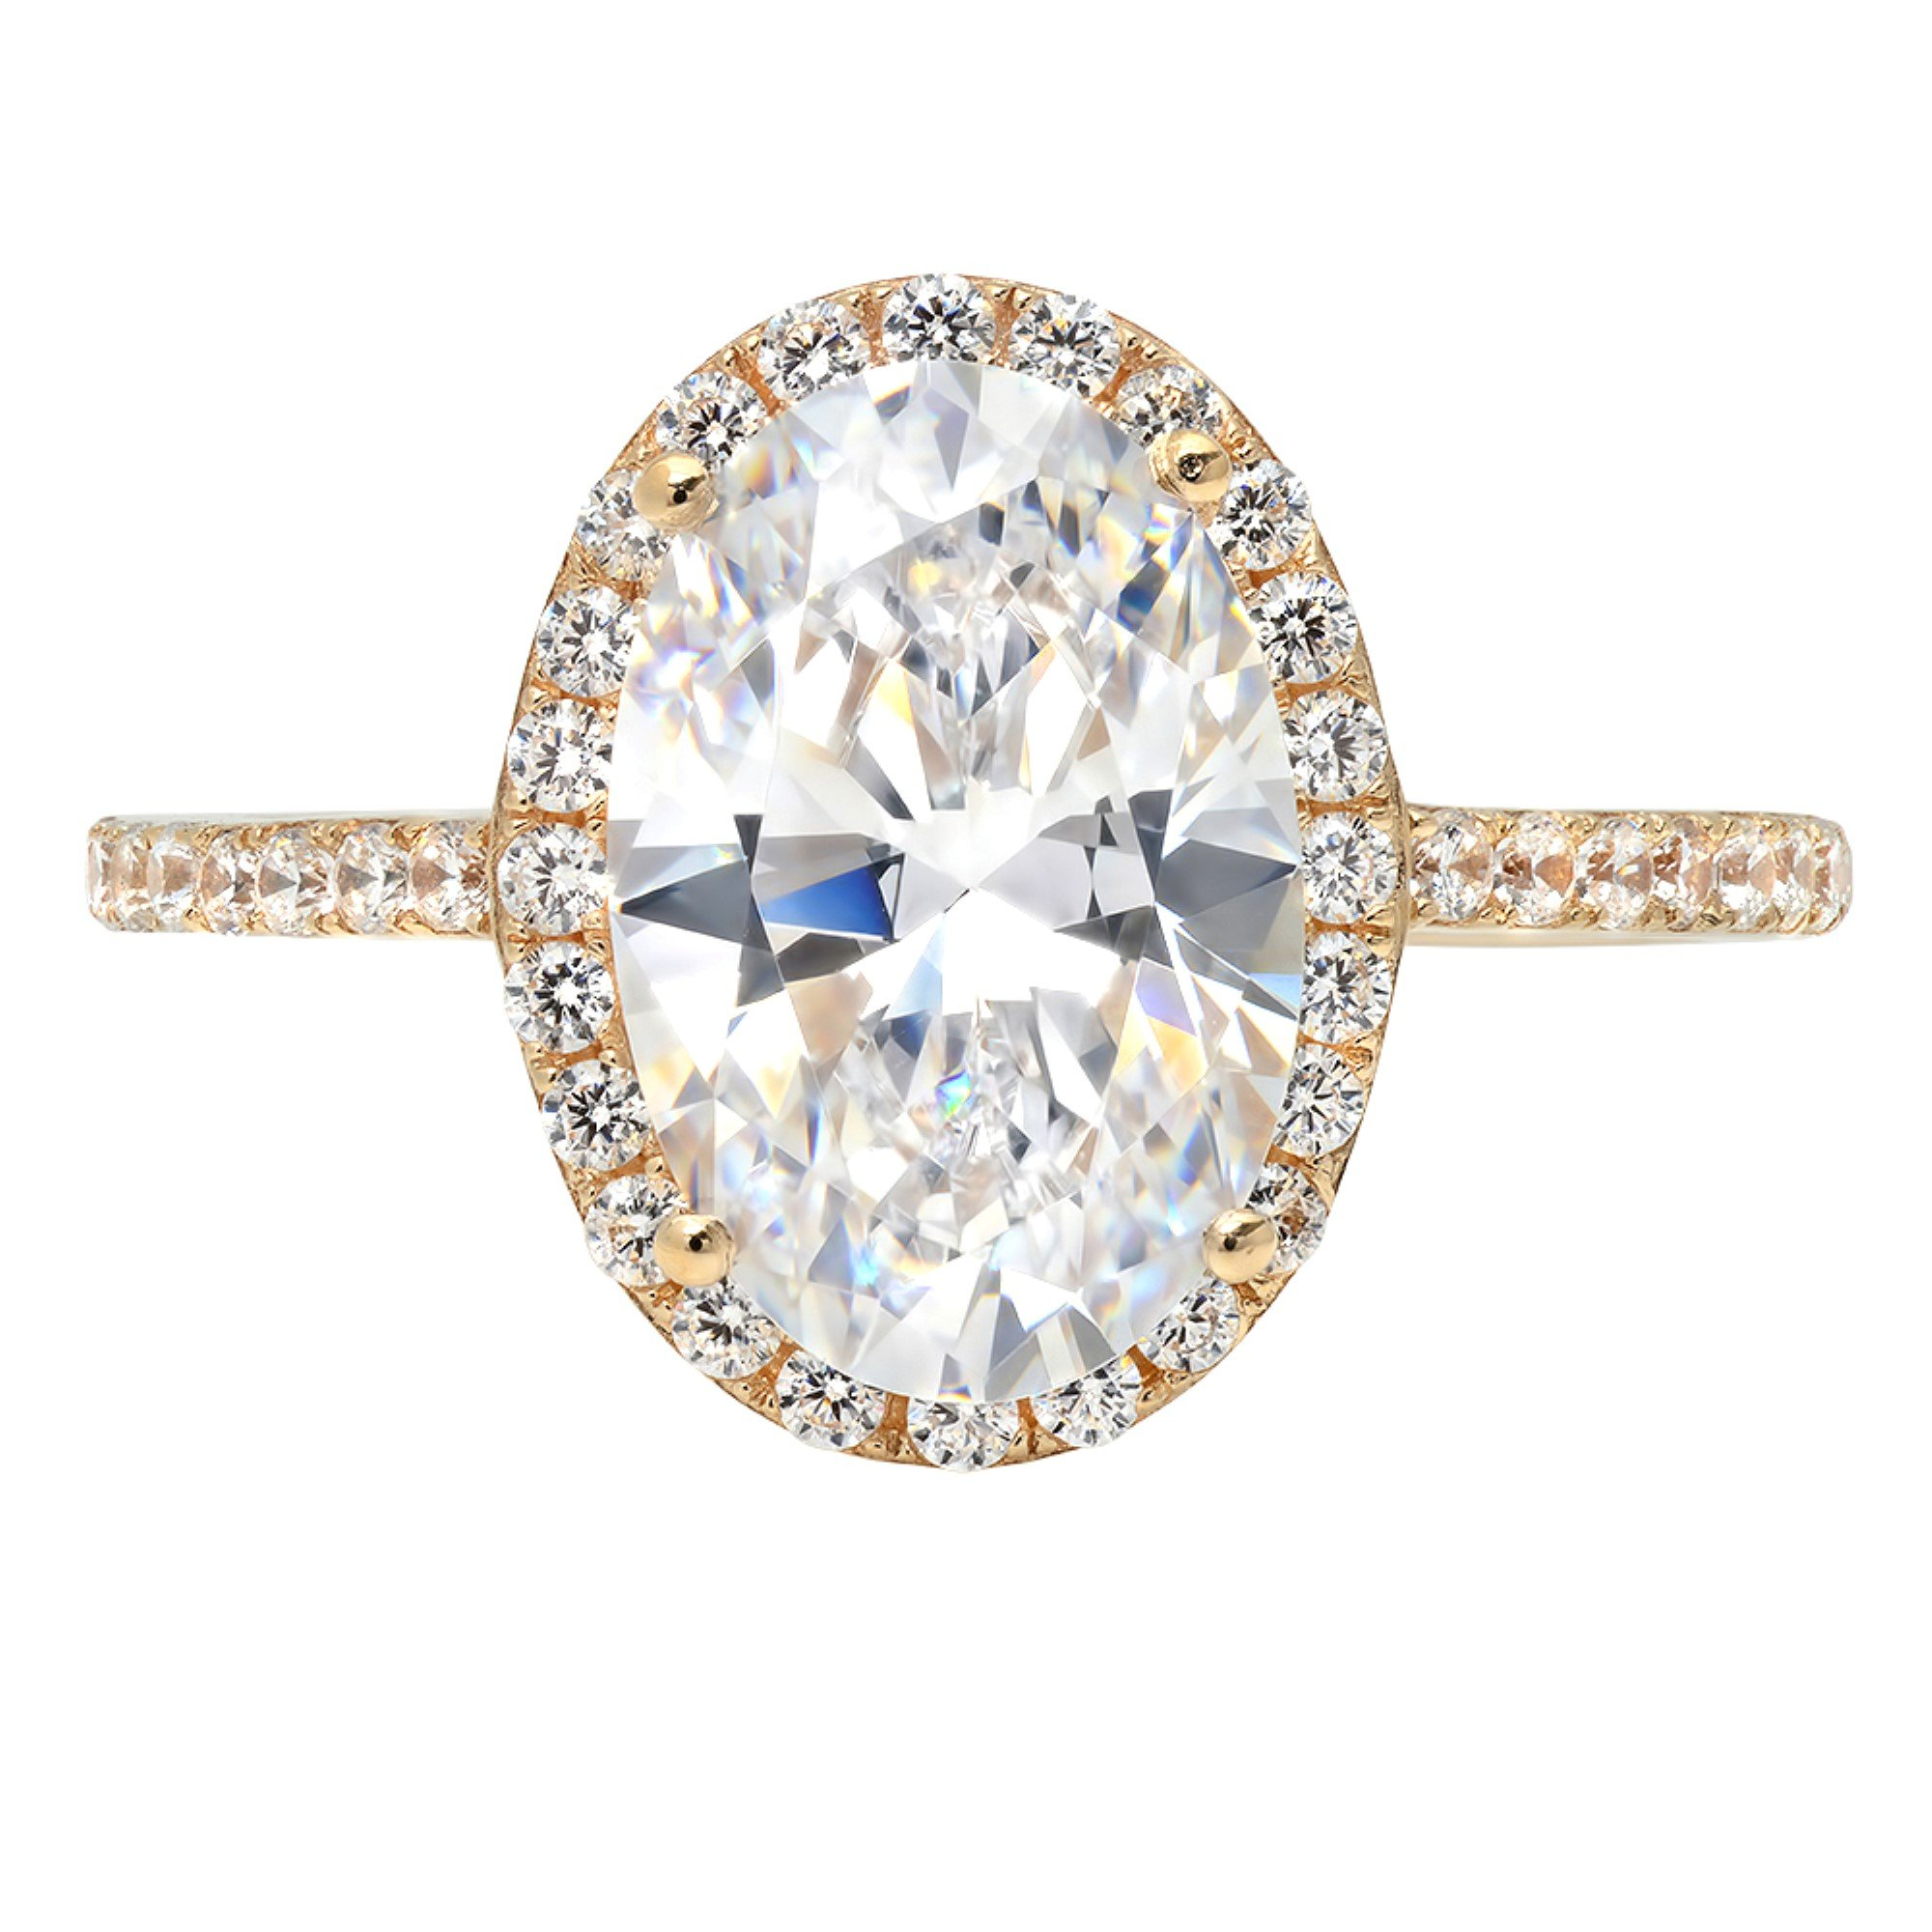 3.58ct Brilliant Oval Cut Halo Solitaire Statement Ring 14k Yellow Gold, 6.25, Clara Pucci